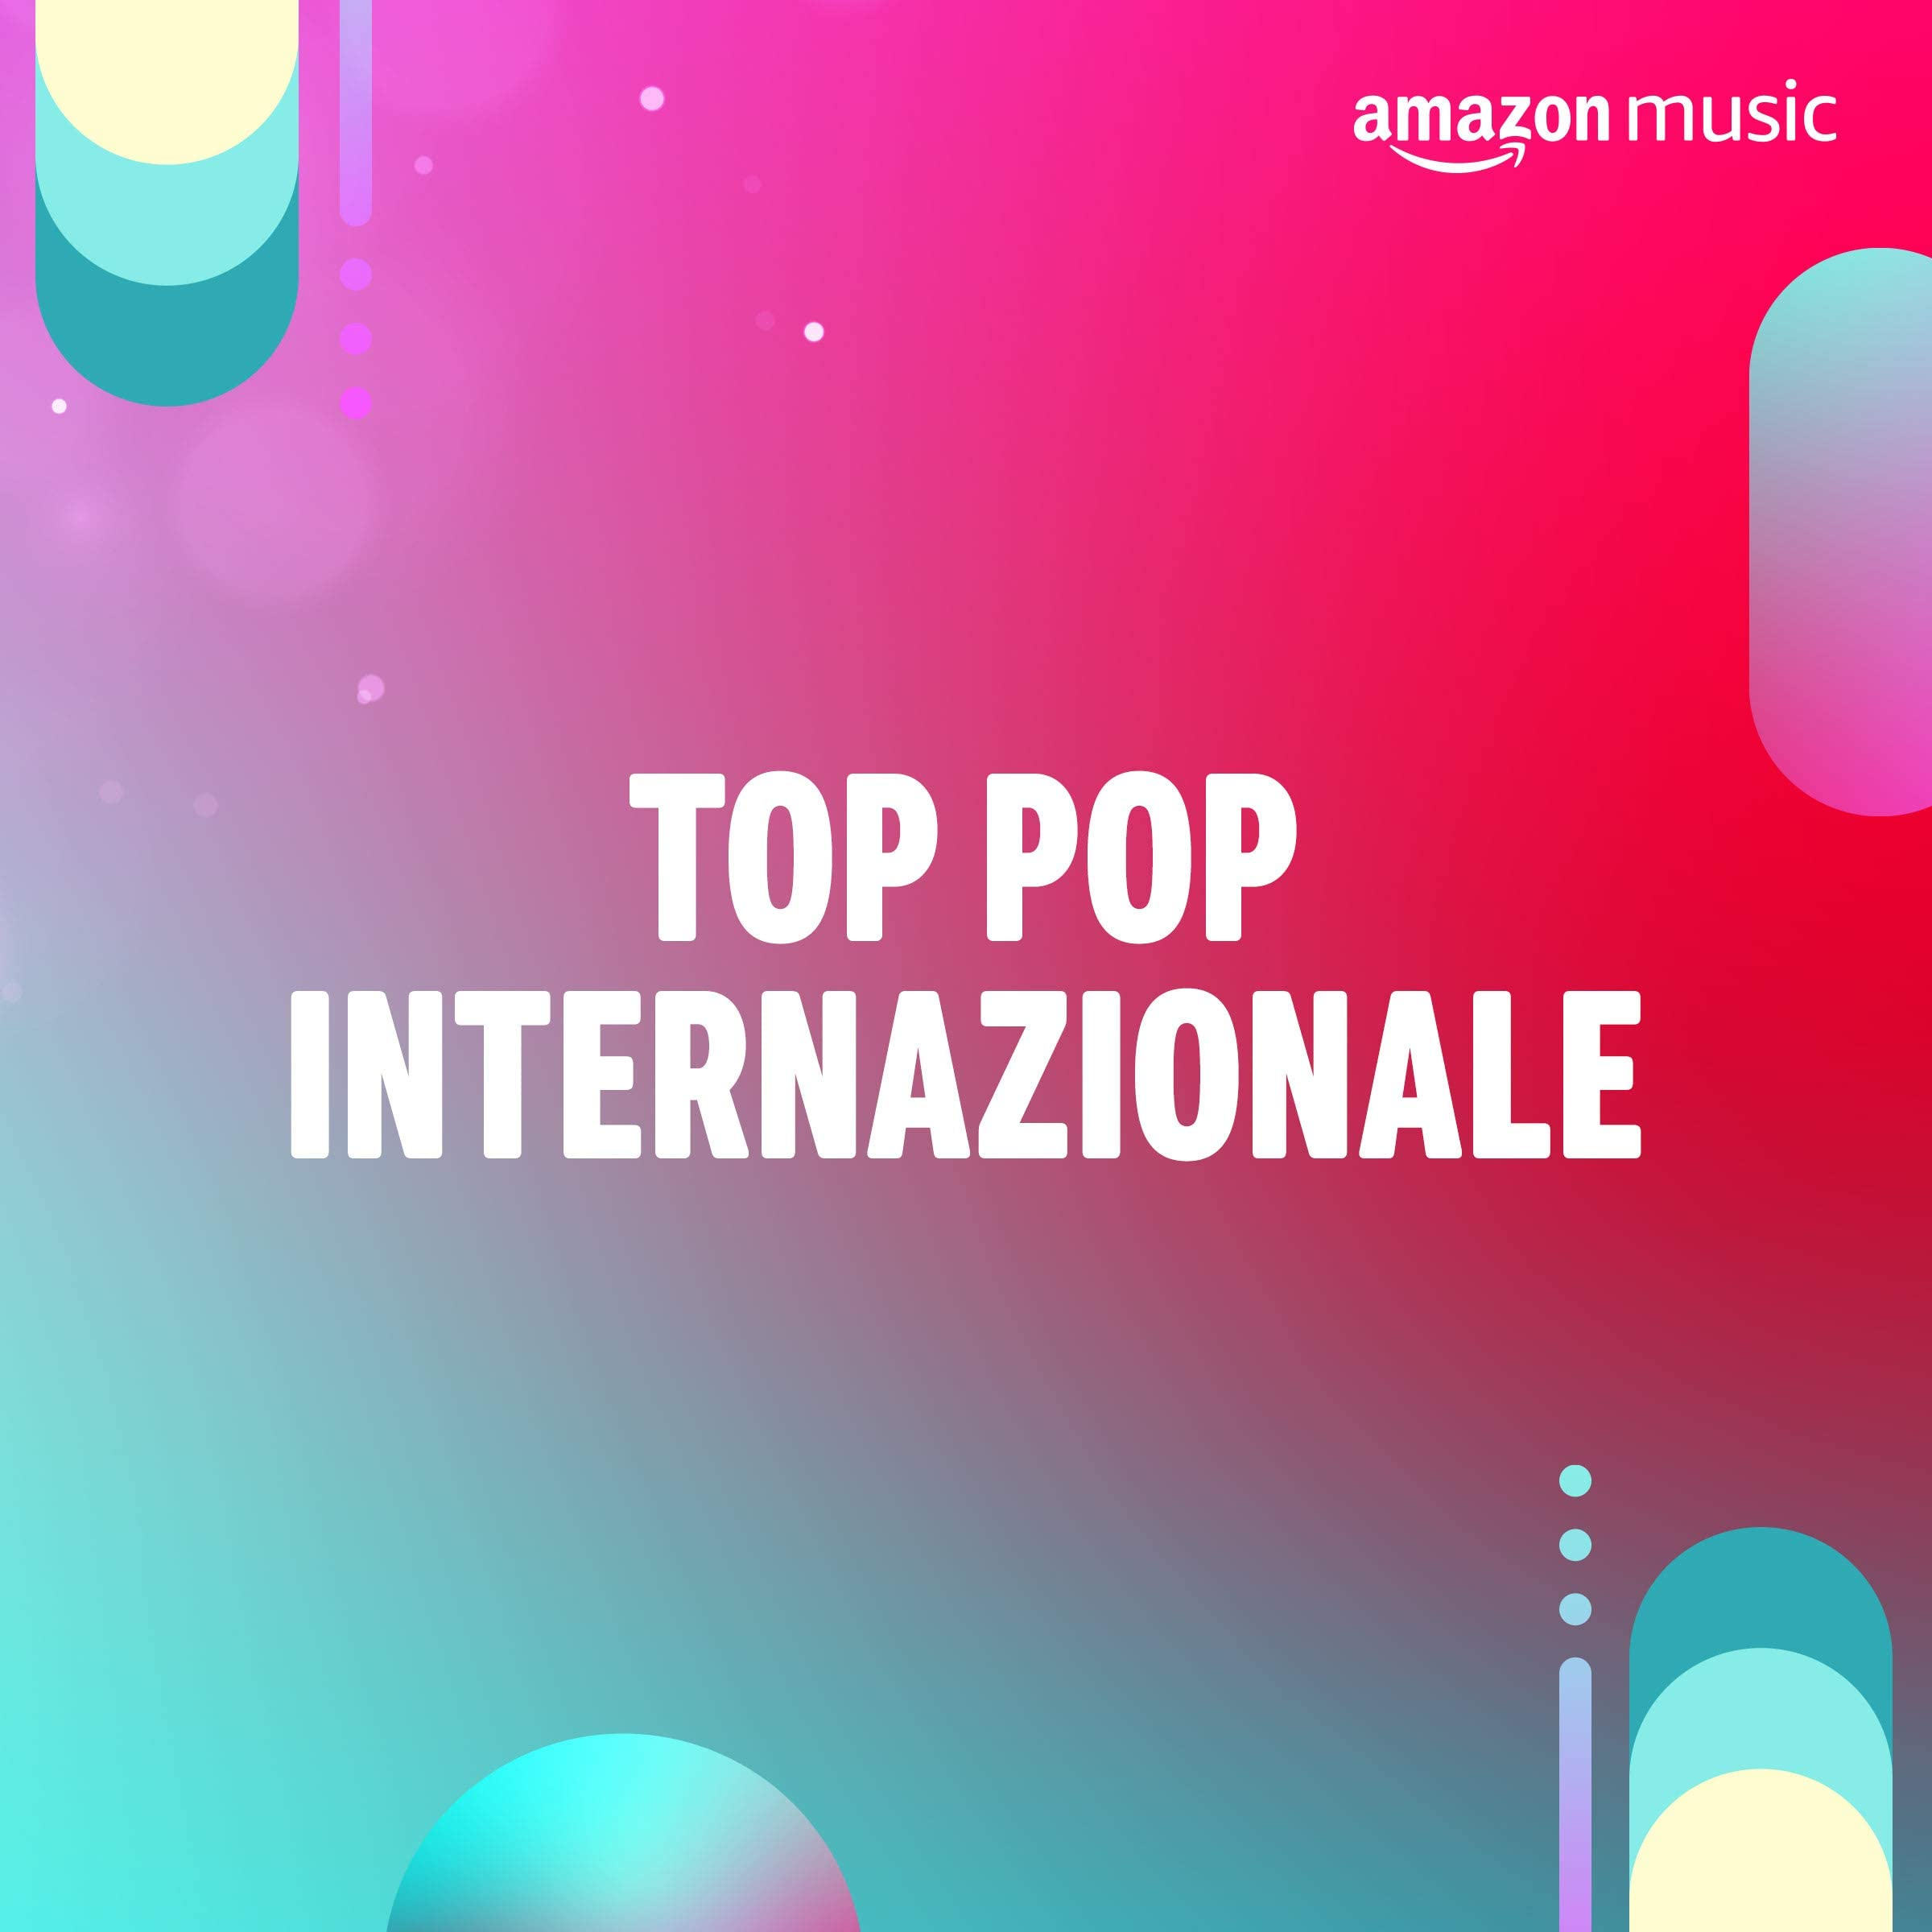 Top Pop Internazionale